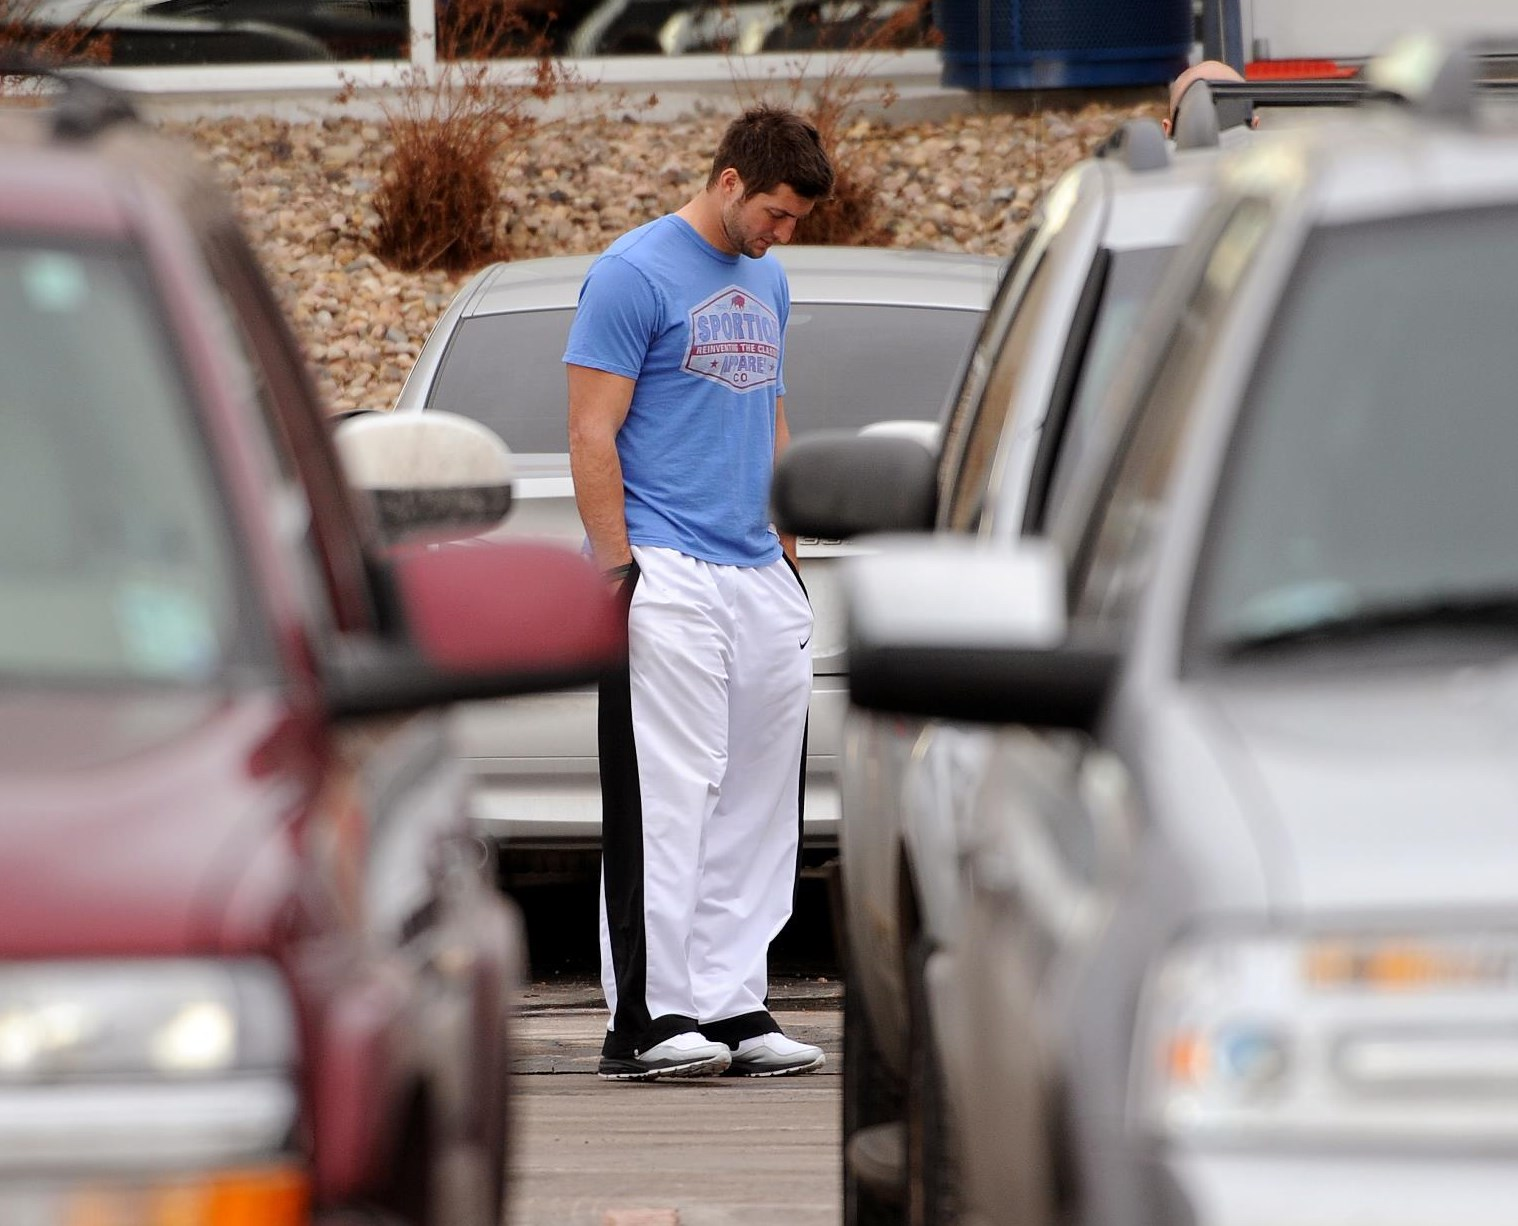 After being cut from the New York Jets, Tim Tebow is on the verge of making NFL history, but probably not exactly the way he would like, writes Mike Klis. FULL STORY: http://dpo.st/YhUGbq (Photo by Helen H. Richardson, The Denver Post)